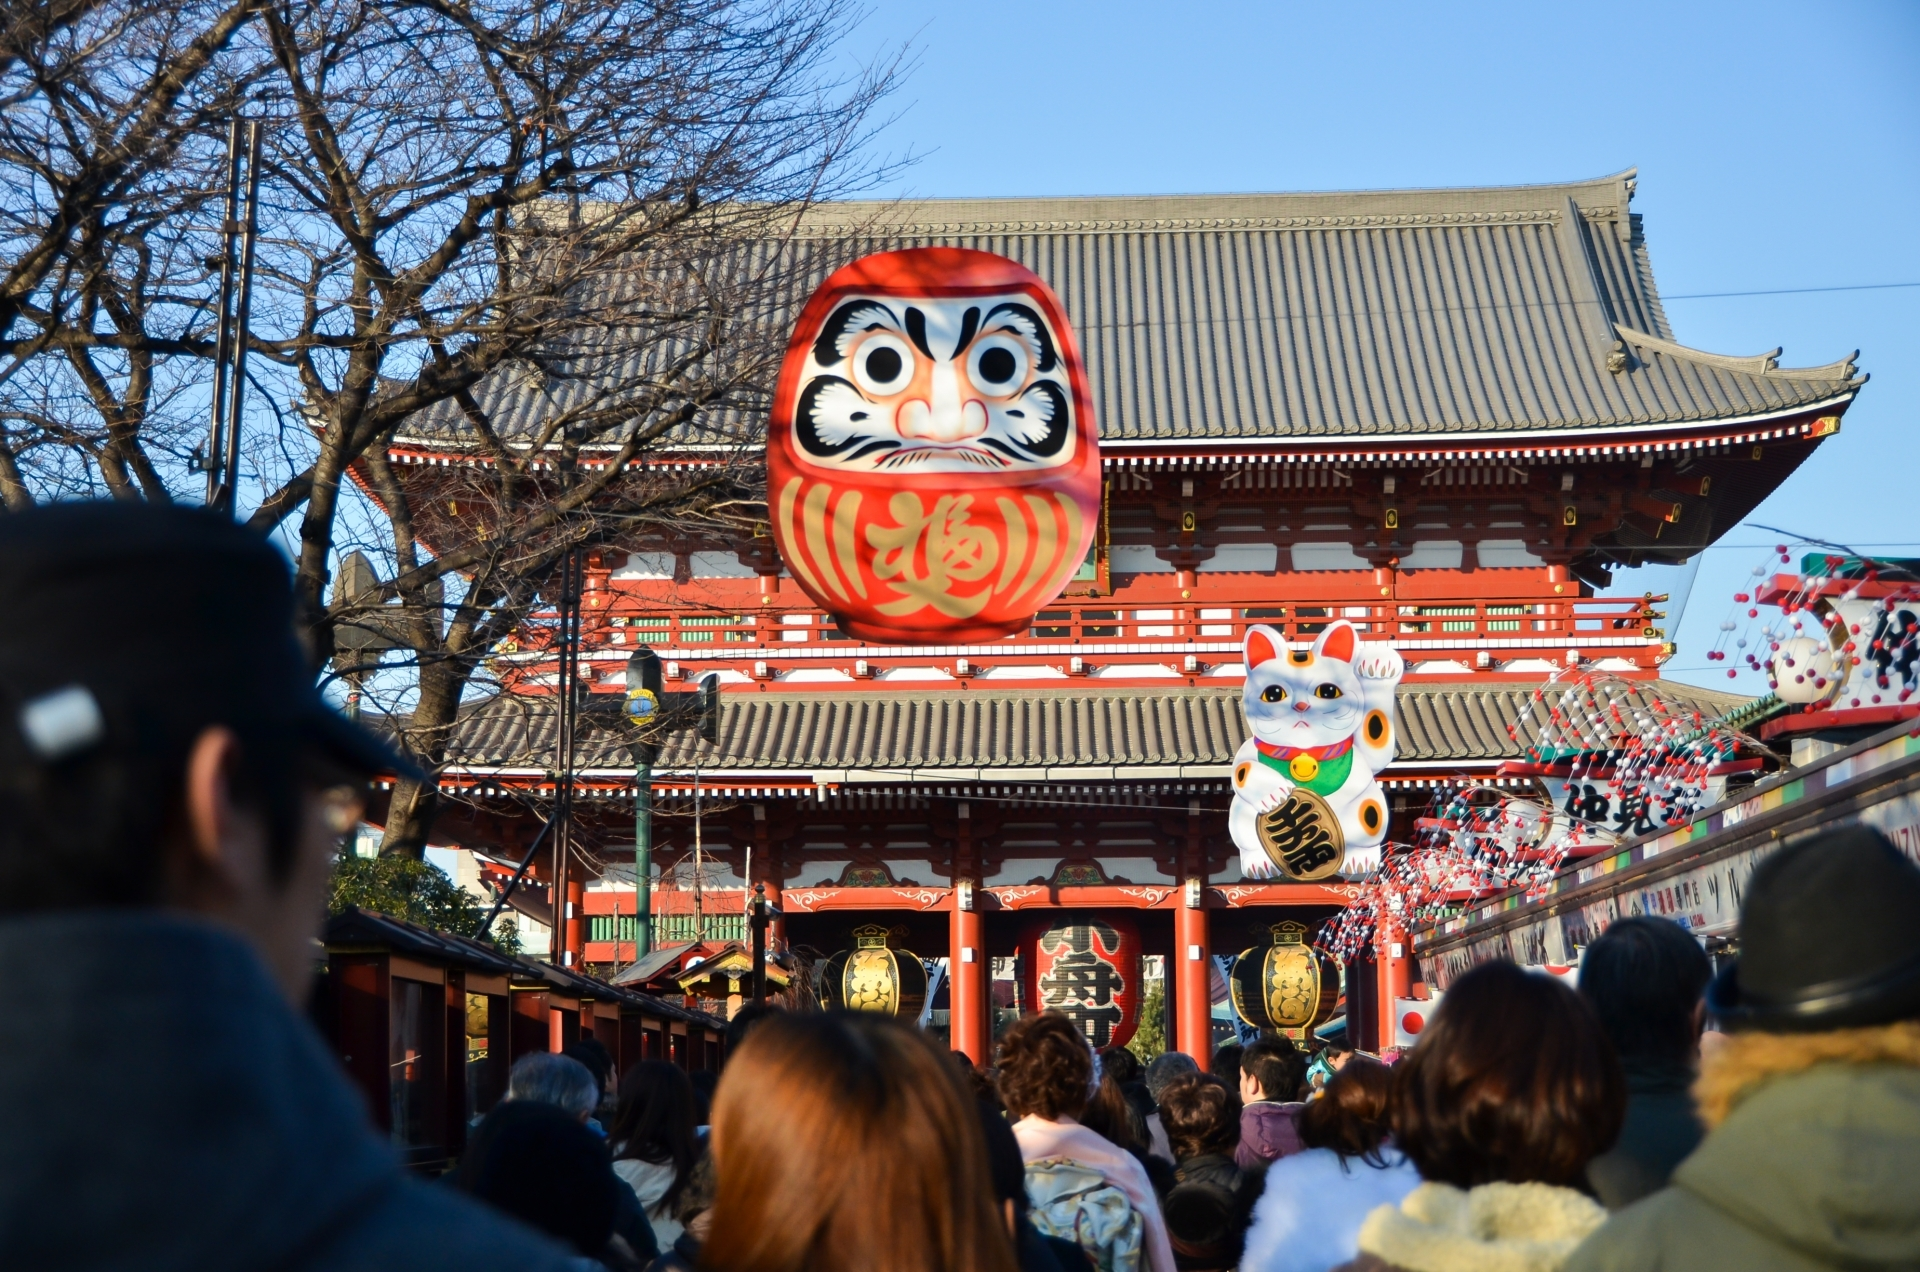 Japan could extend the New Year holidays by a whole week in 2021